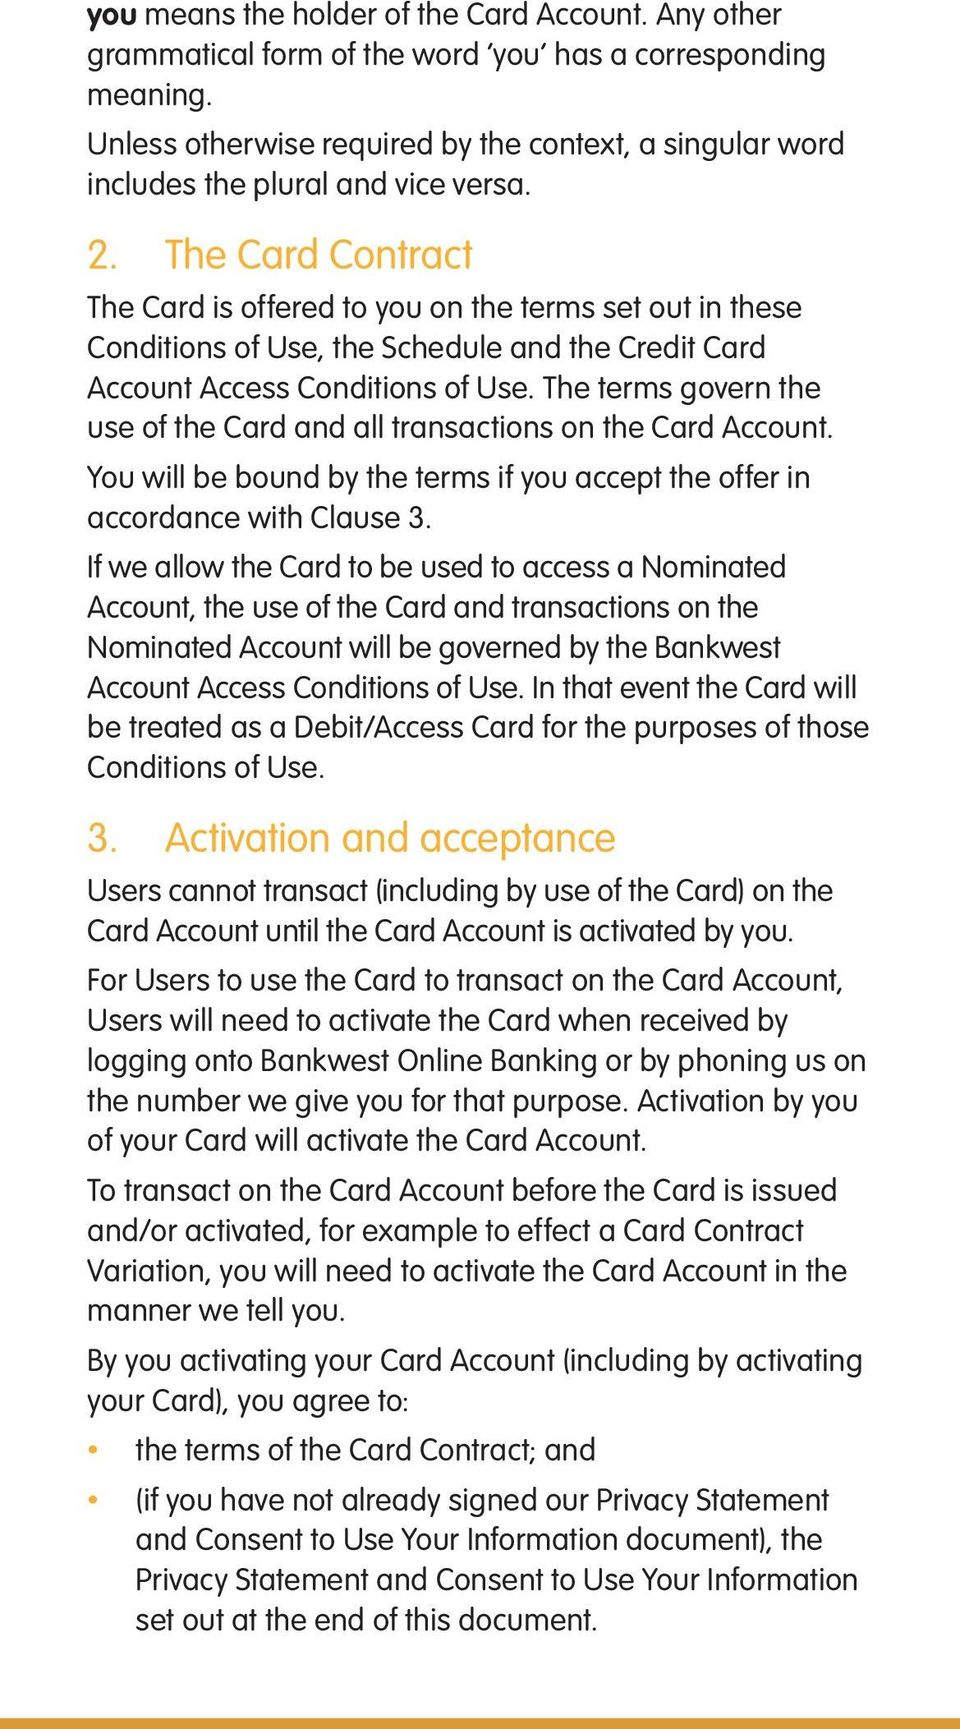 The Card Contract The Card is offered to you on the terms set out in these Conditions of Use, the Schedule and the Credit Card Account Access Conditions of Use.